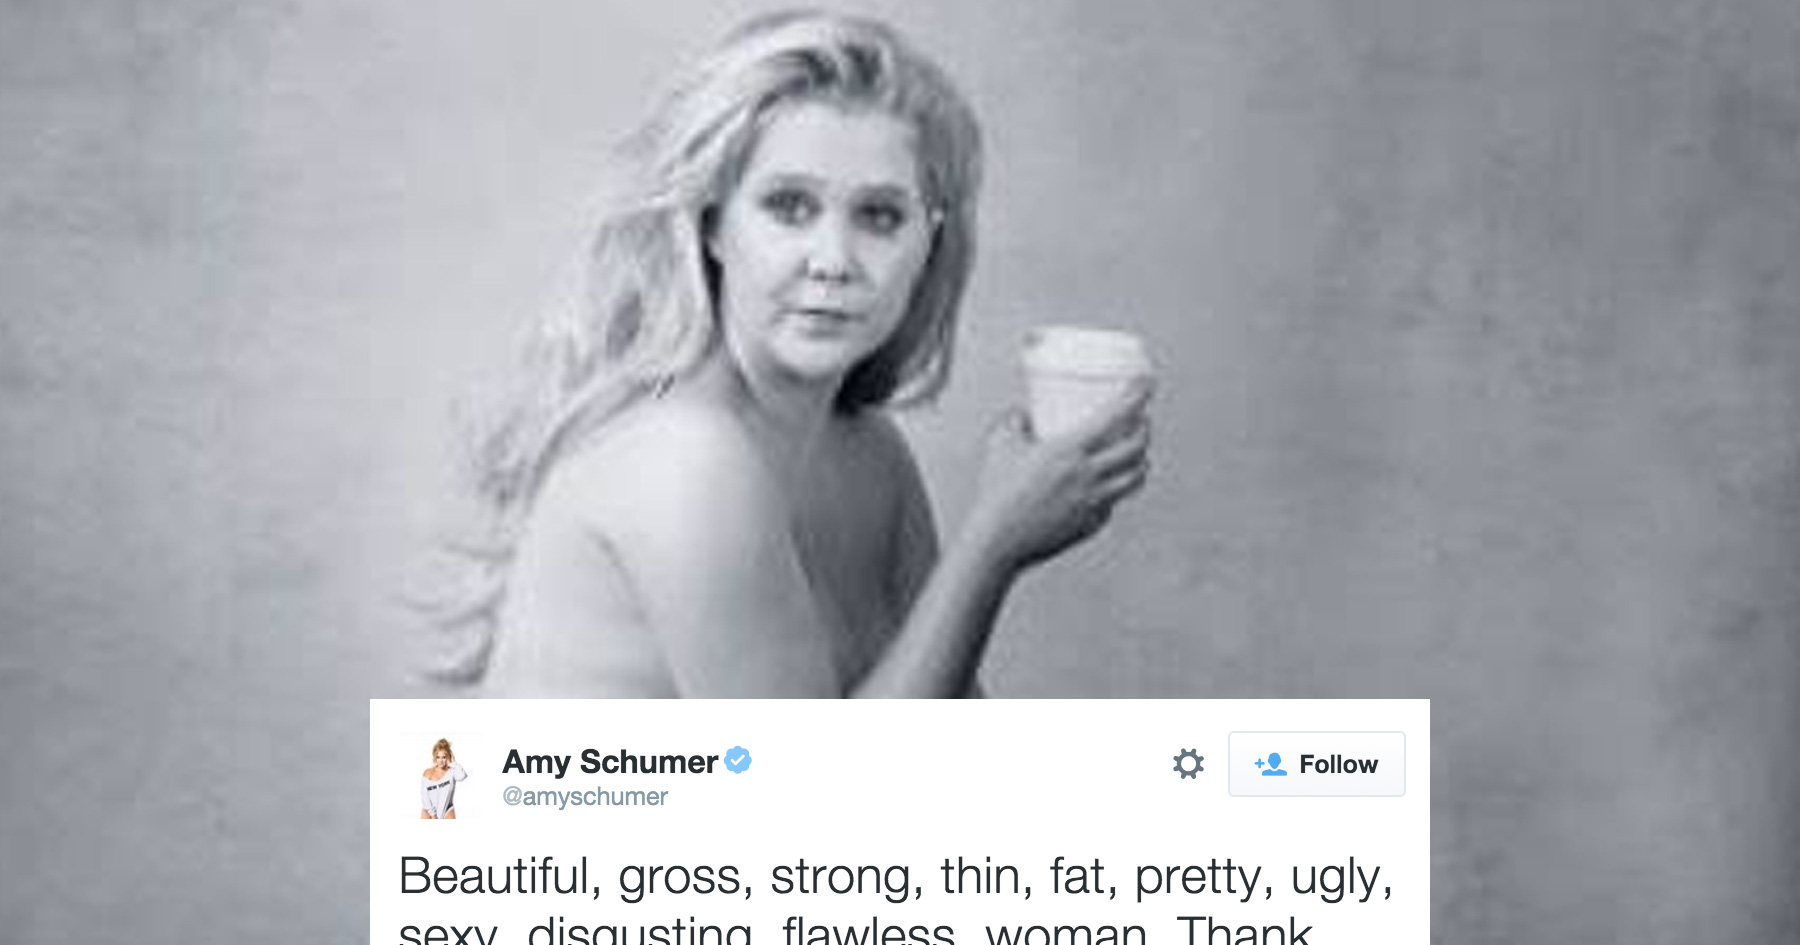 Amy Schumer Poses Nearly Nude for Annie Leibovitz Photo